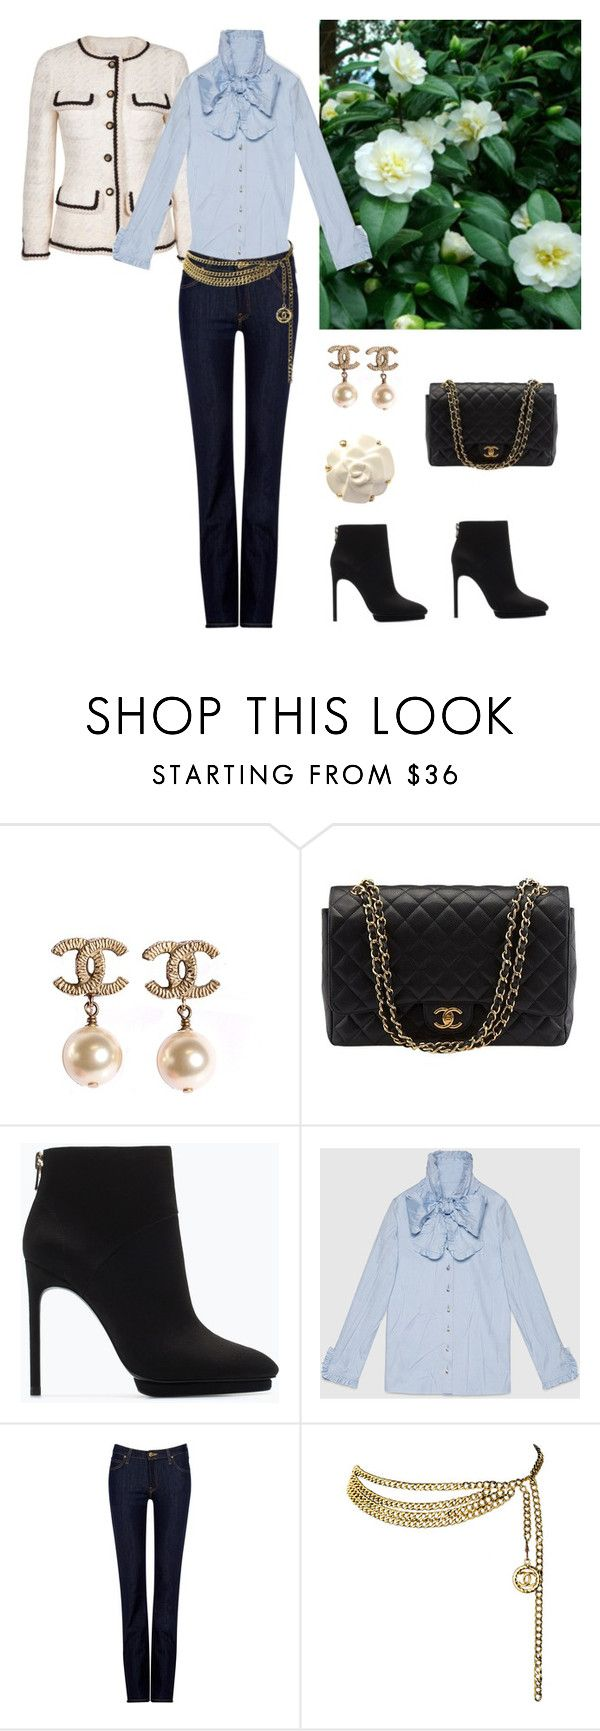 """""""I don't like Chanel...I love it!"""" by dezaval ❤ liked on Polyvore featuring Chanel, Zara, Gucci and Lee"""